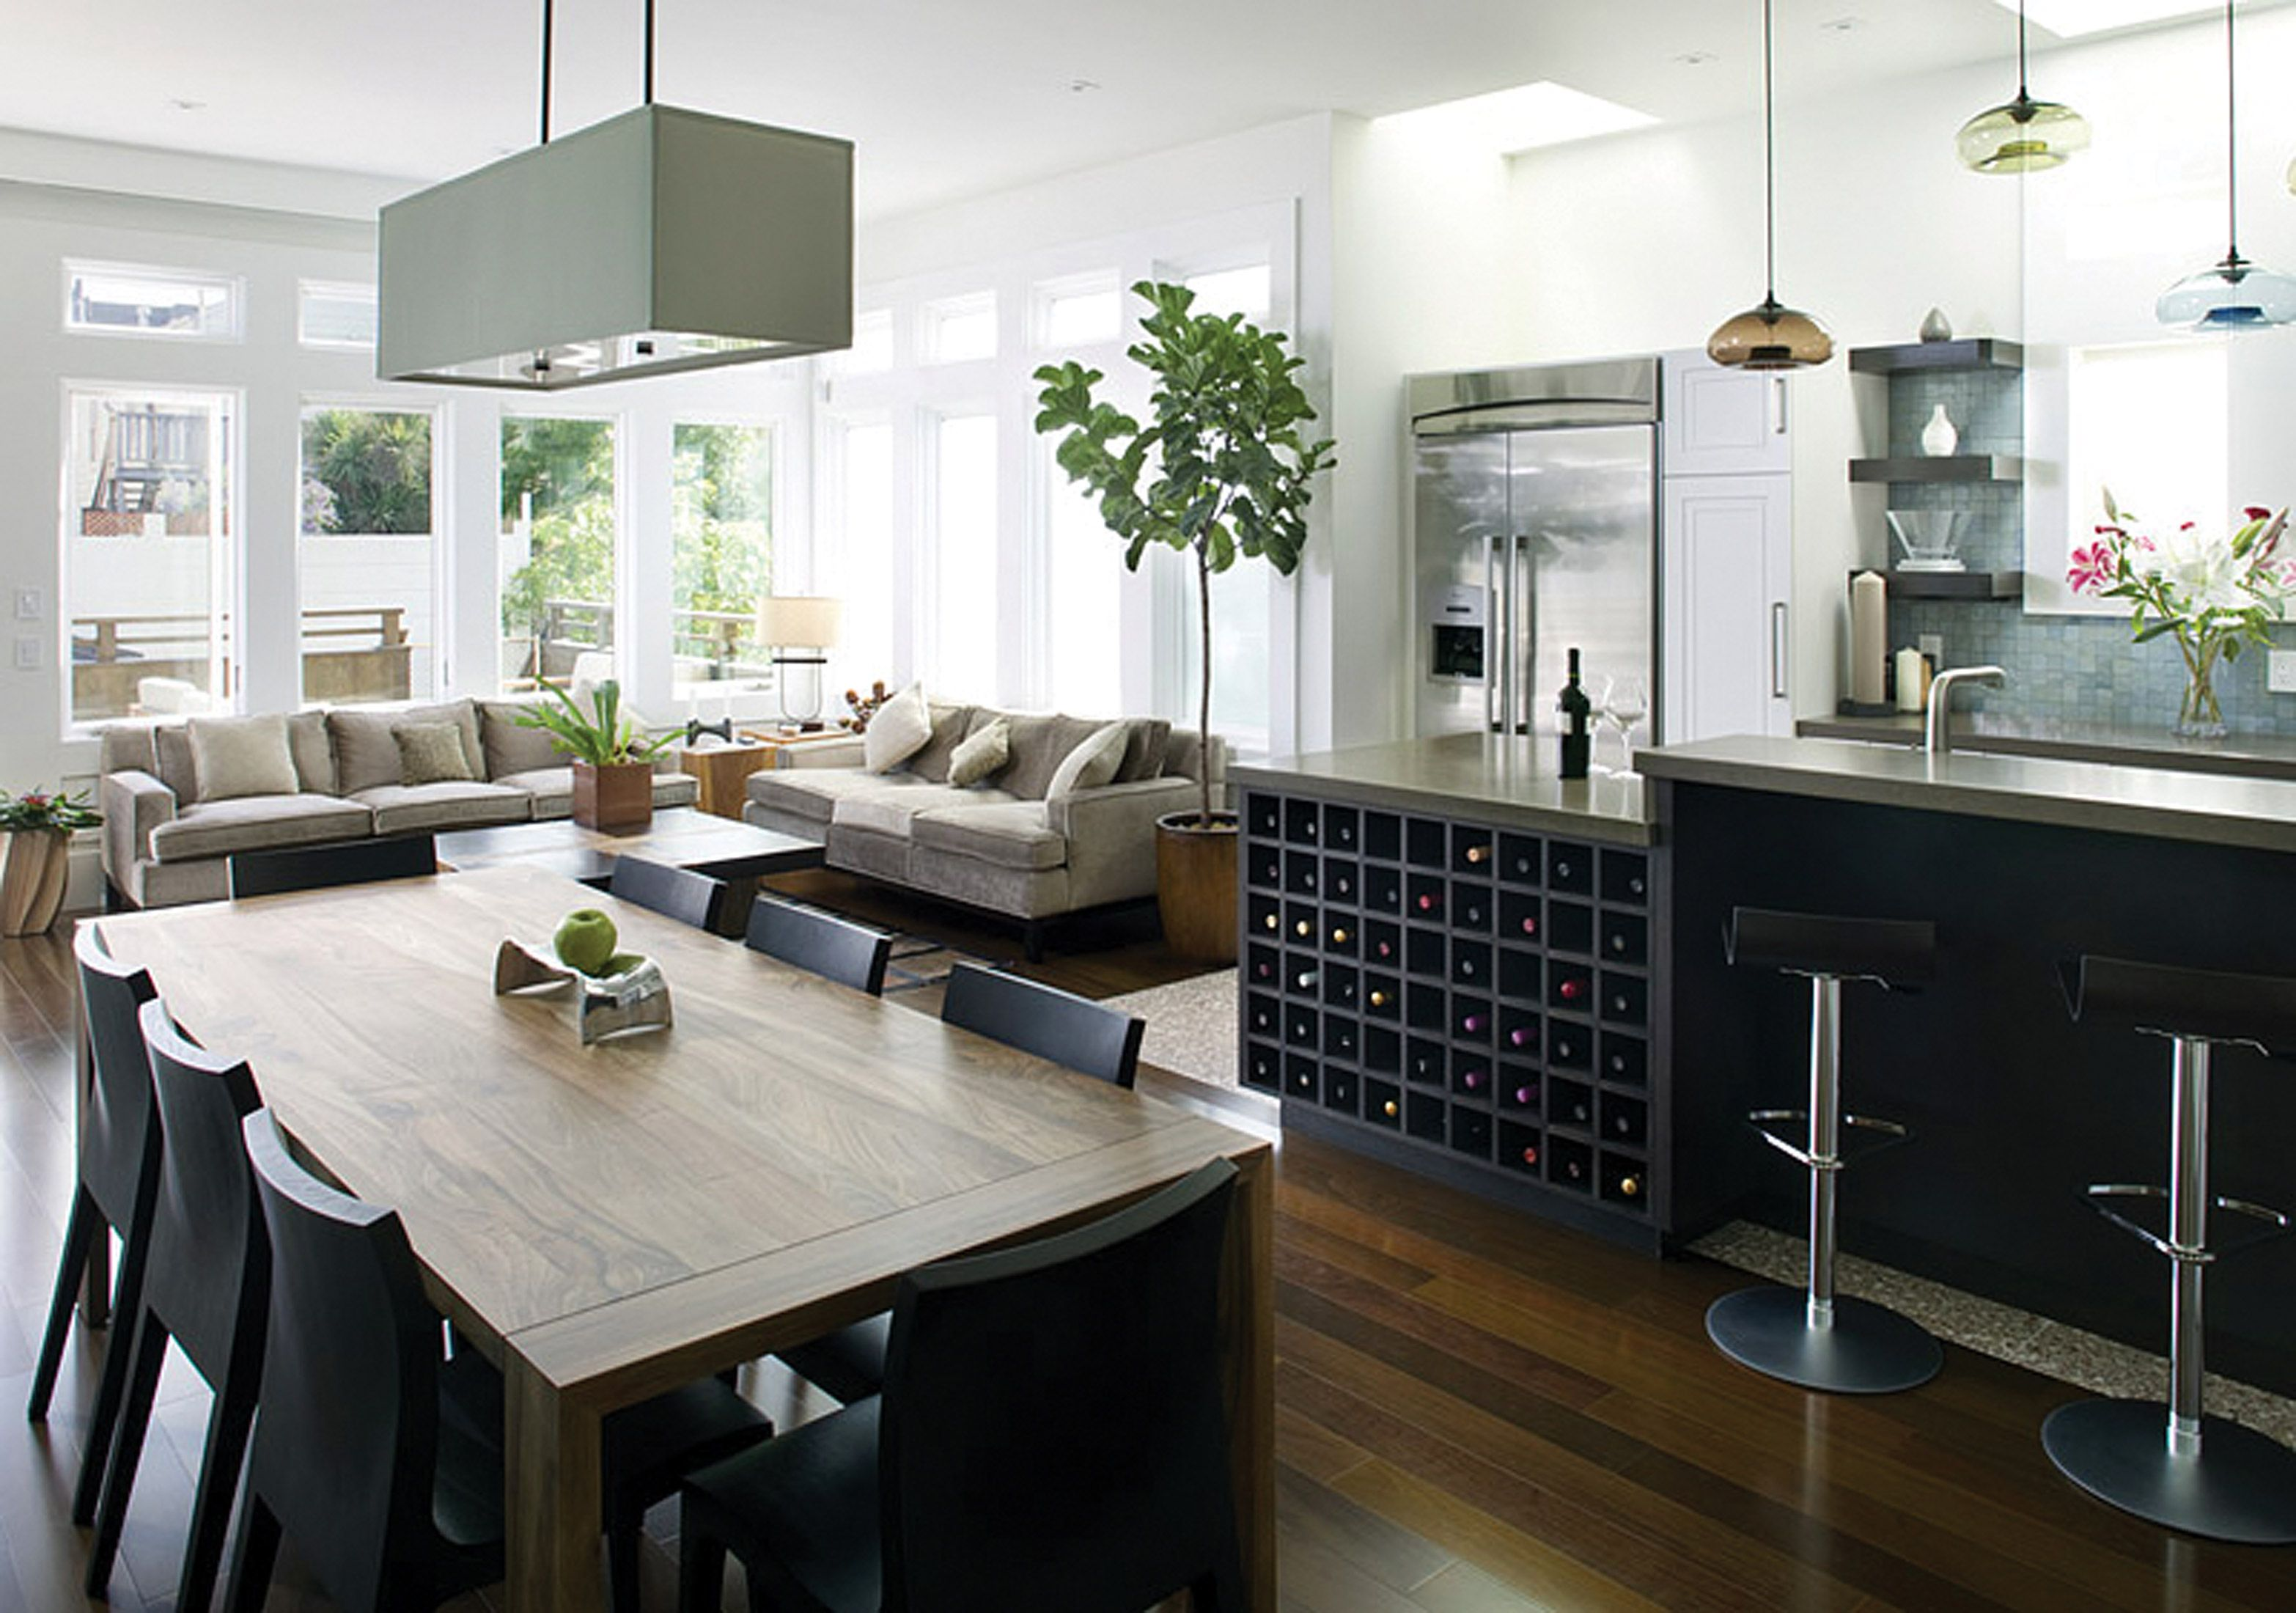 pendant lighting for dining room kitchen lights over table Contemporary pendant lighting for dining room design